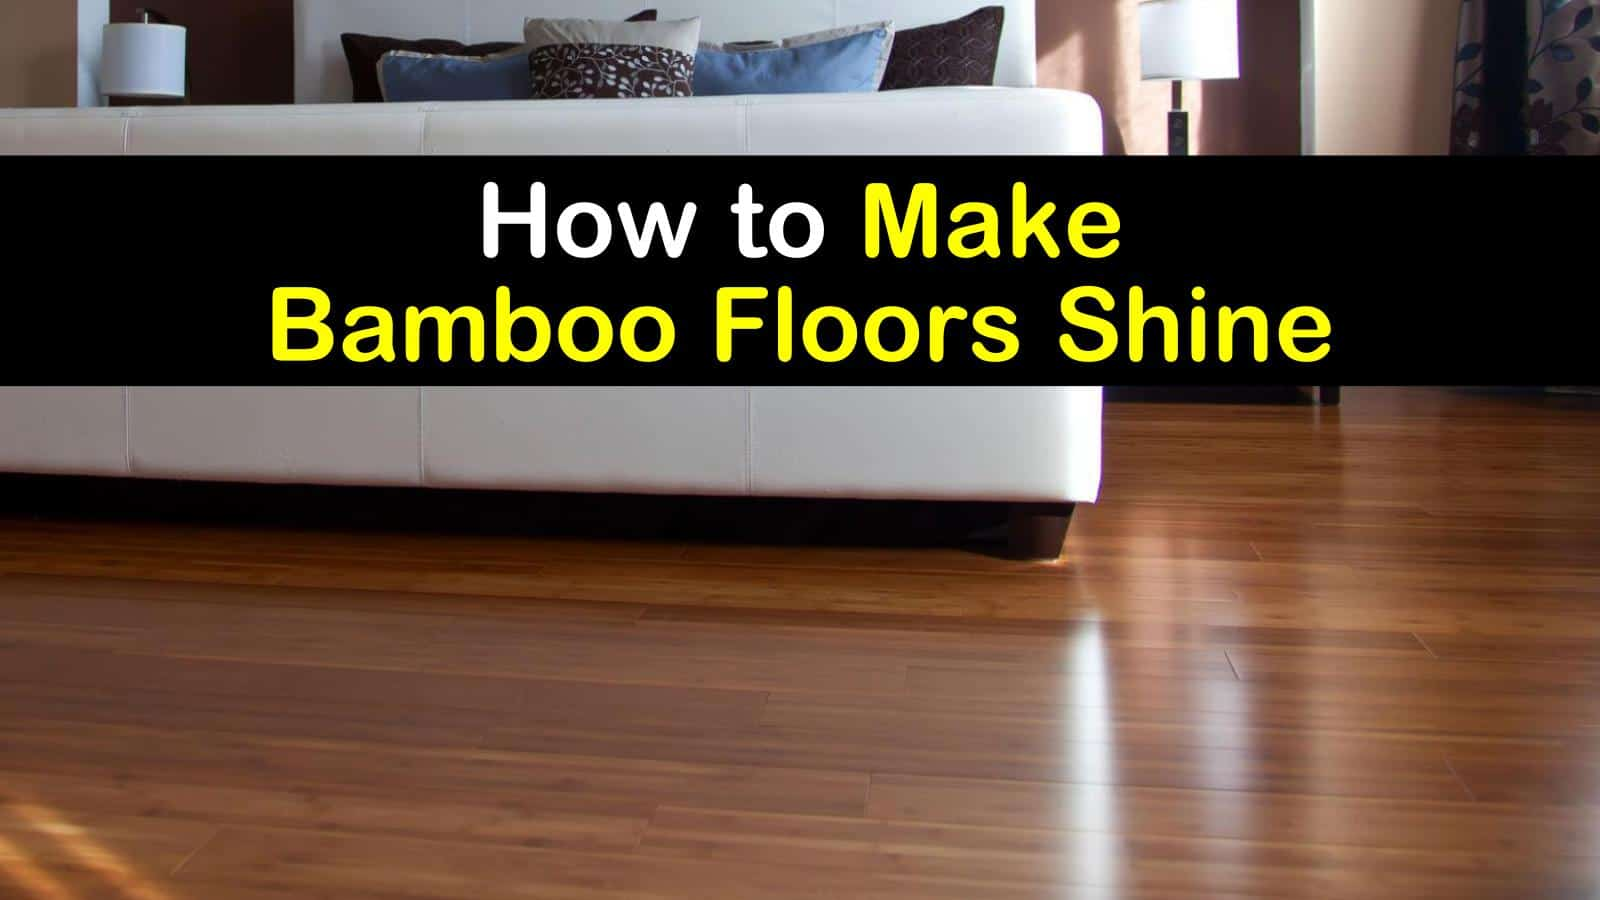 5 Brilliant Ways To Make Bamboo Floors Shine